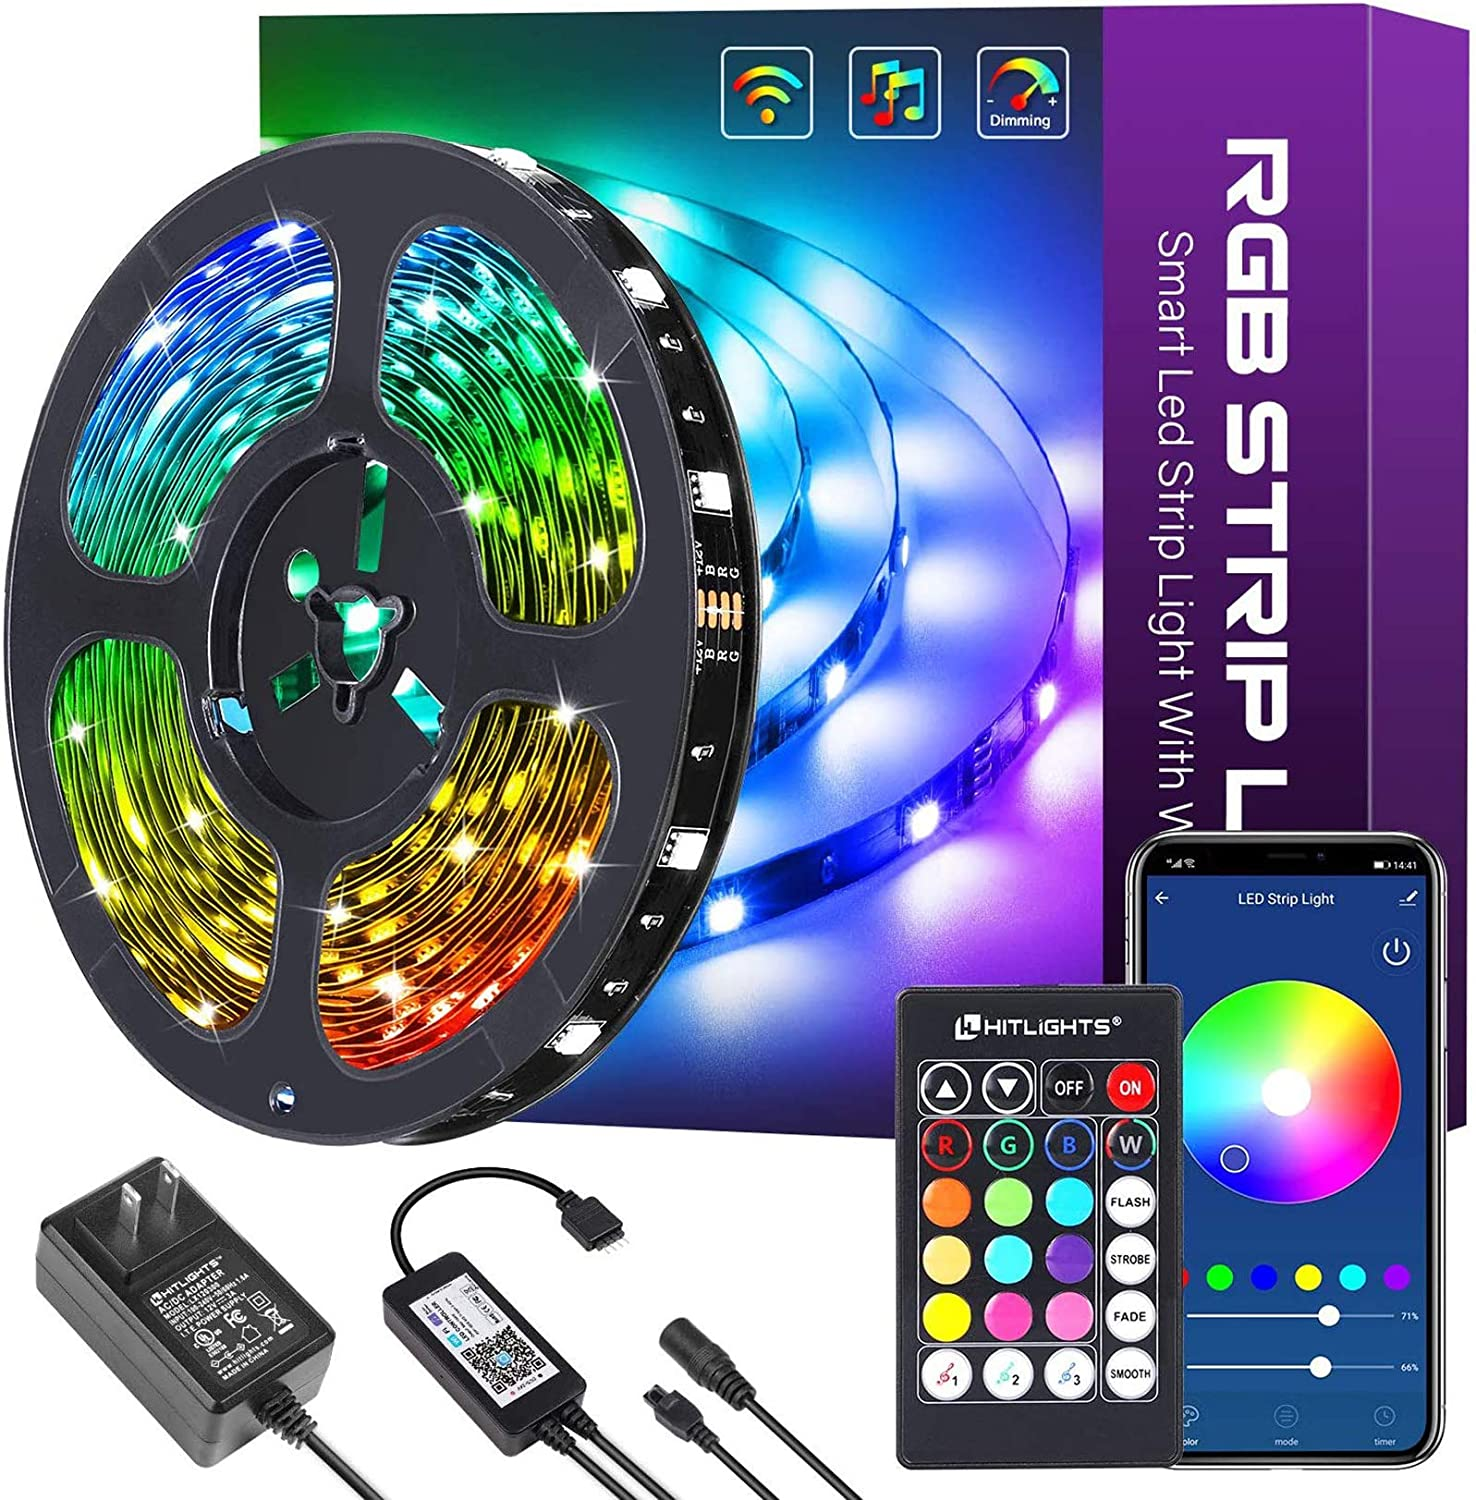 and Party with Bright 5050 LED Kitchen TV 16 Million Colors Govee 32.8ft WiFi LED Strip Lights Works with Alexa Home Google Home Smart Phone App Controlled Music Sync RGB Light Strips for Room